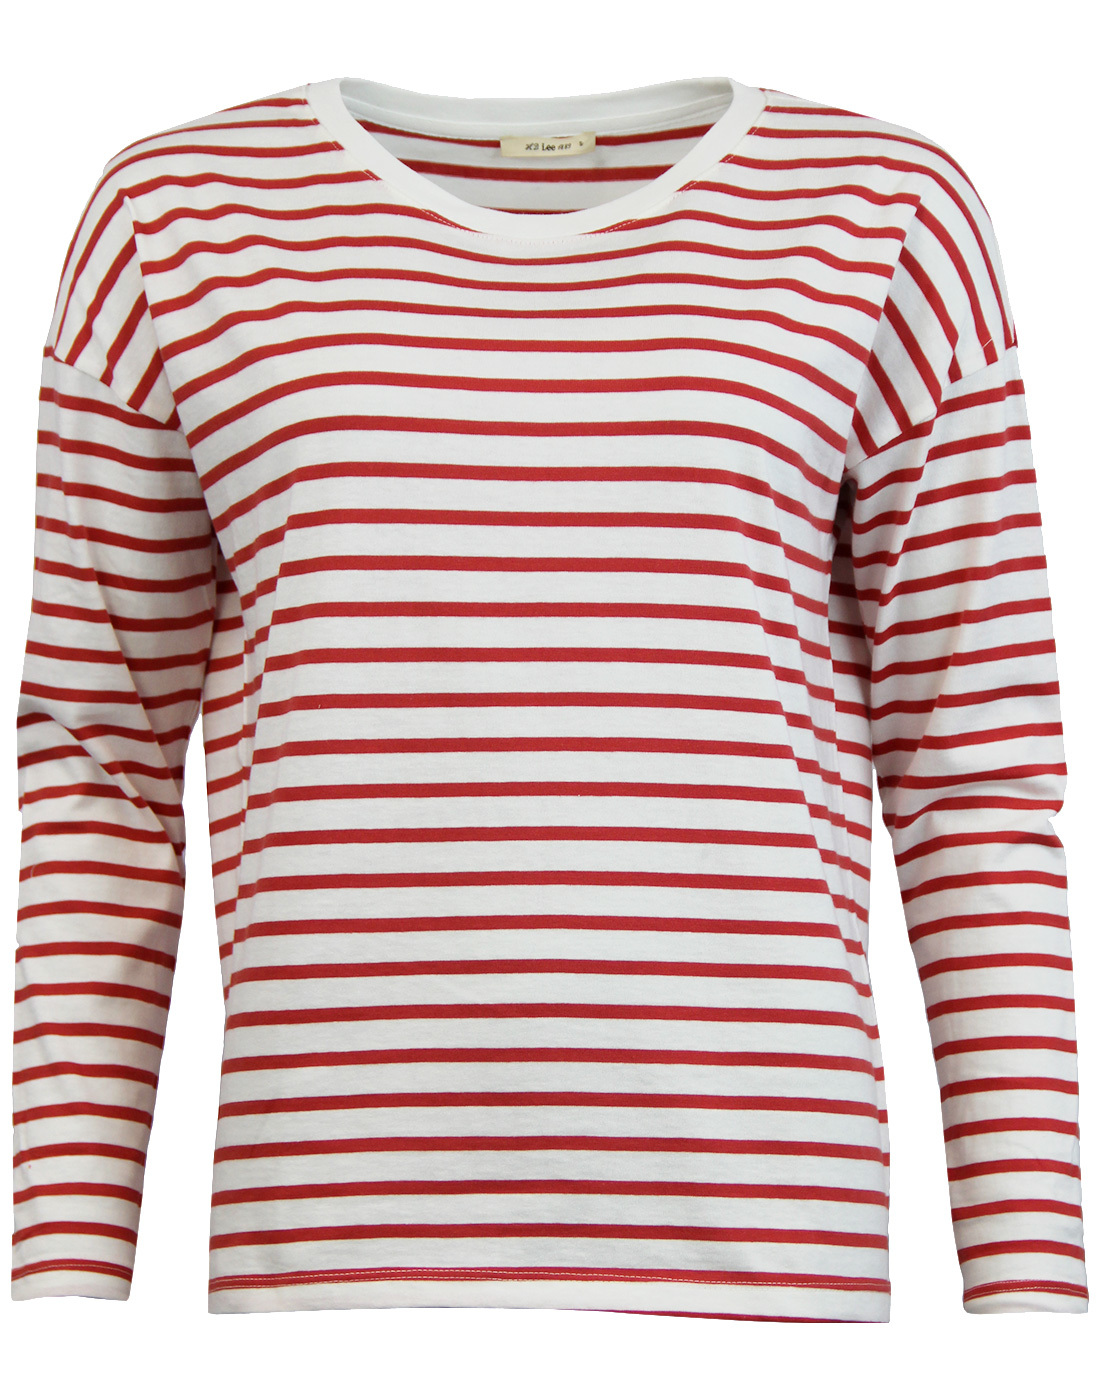 LEE Womens Retro Sixties Long Sleeve Breton Tee